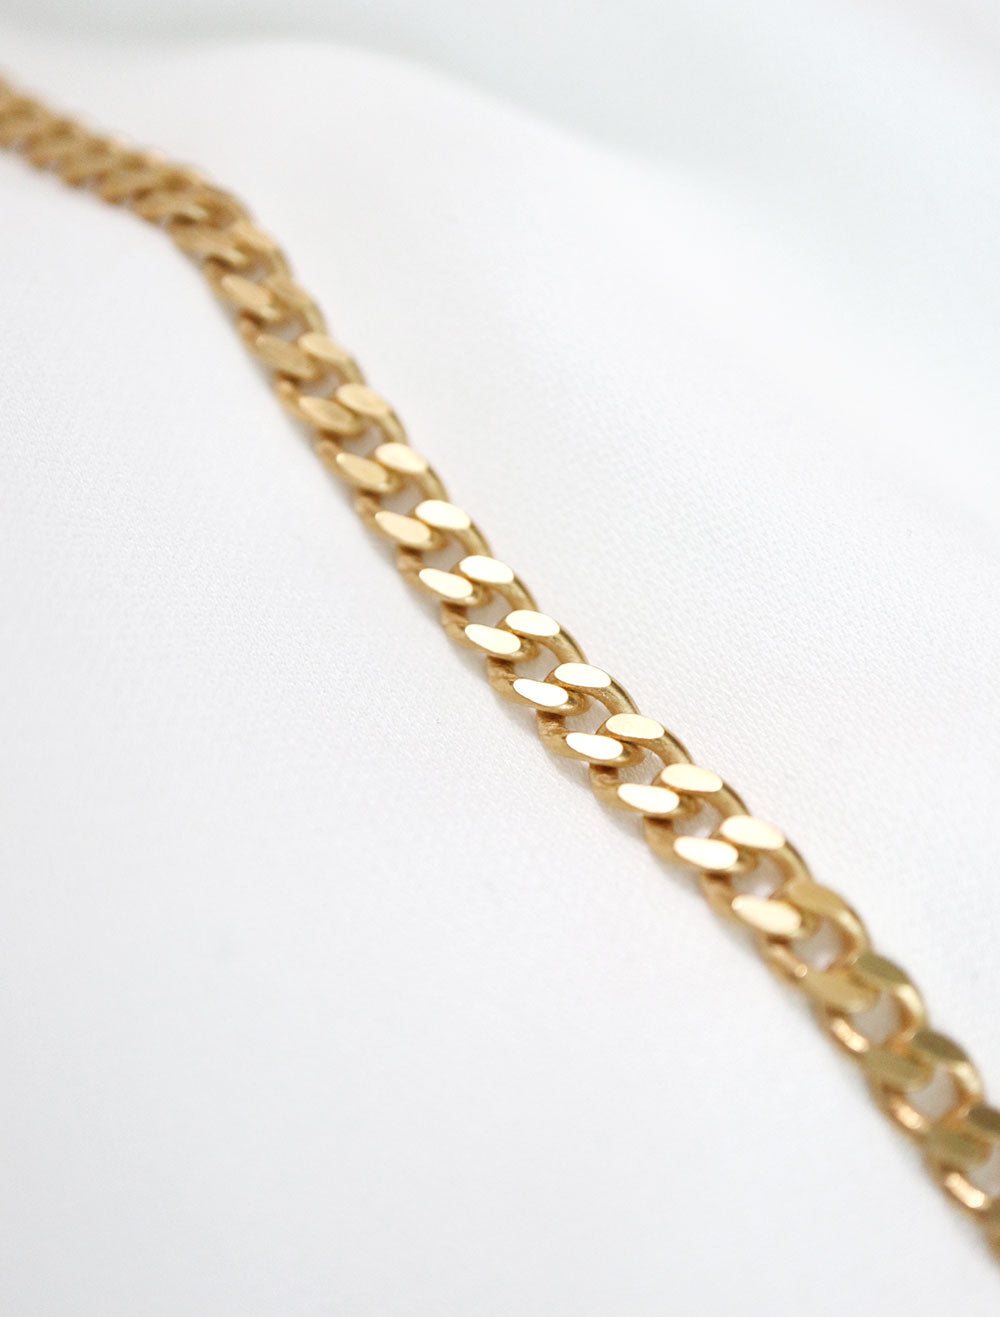 14k gold filled curb chain necklace